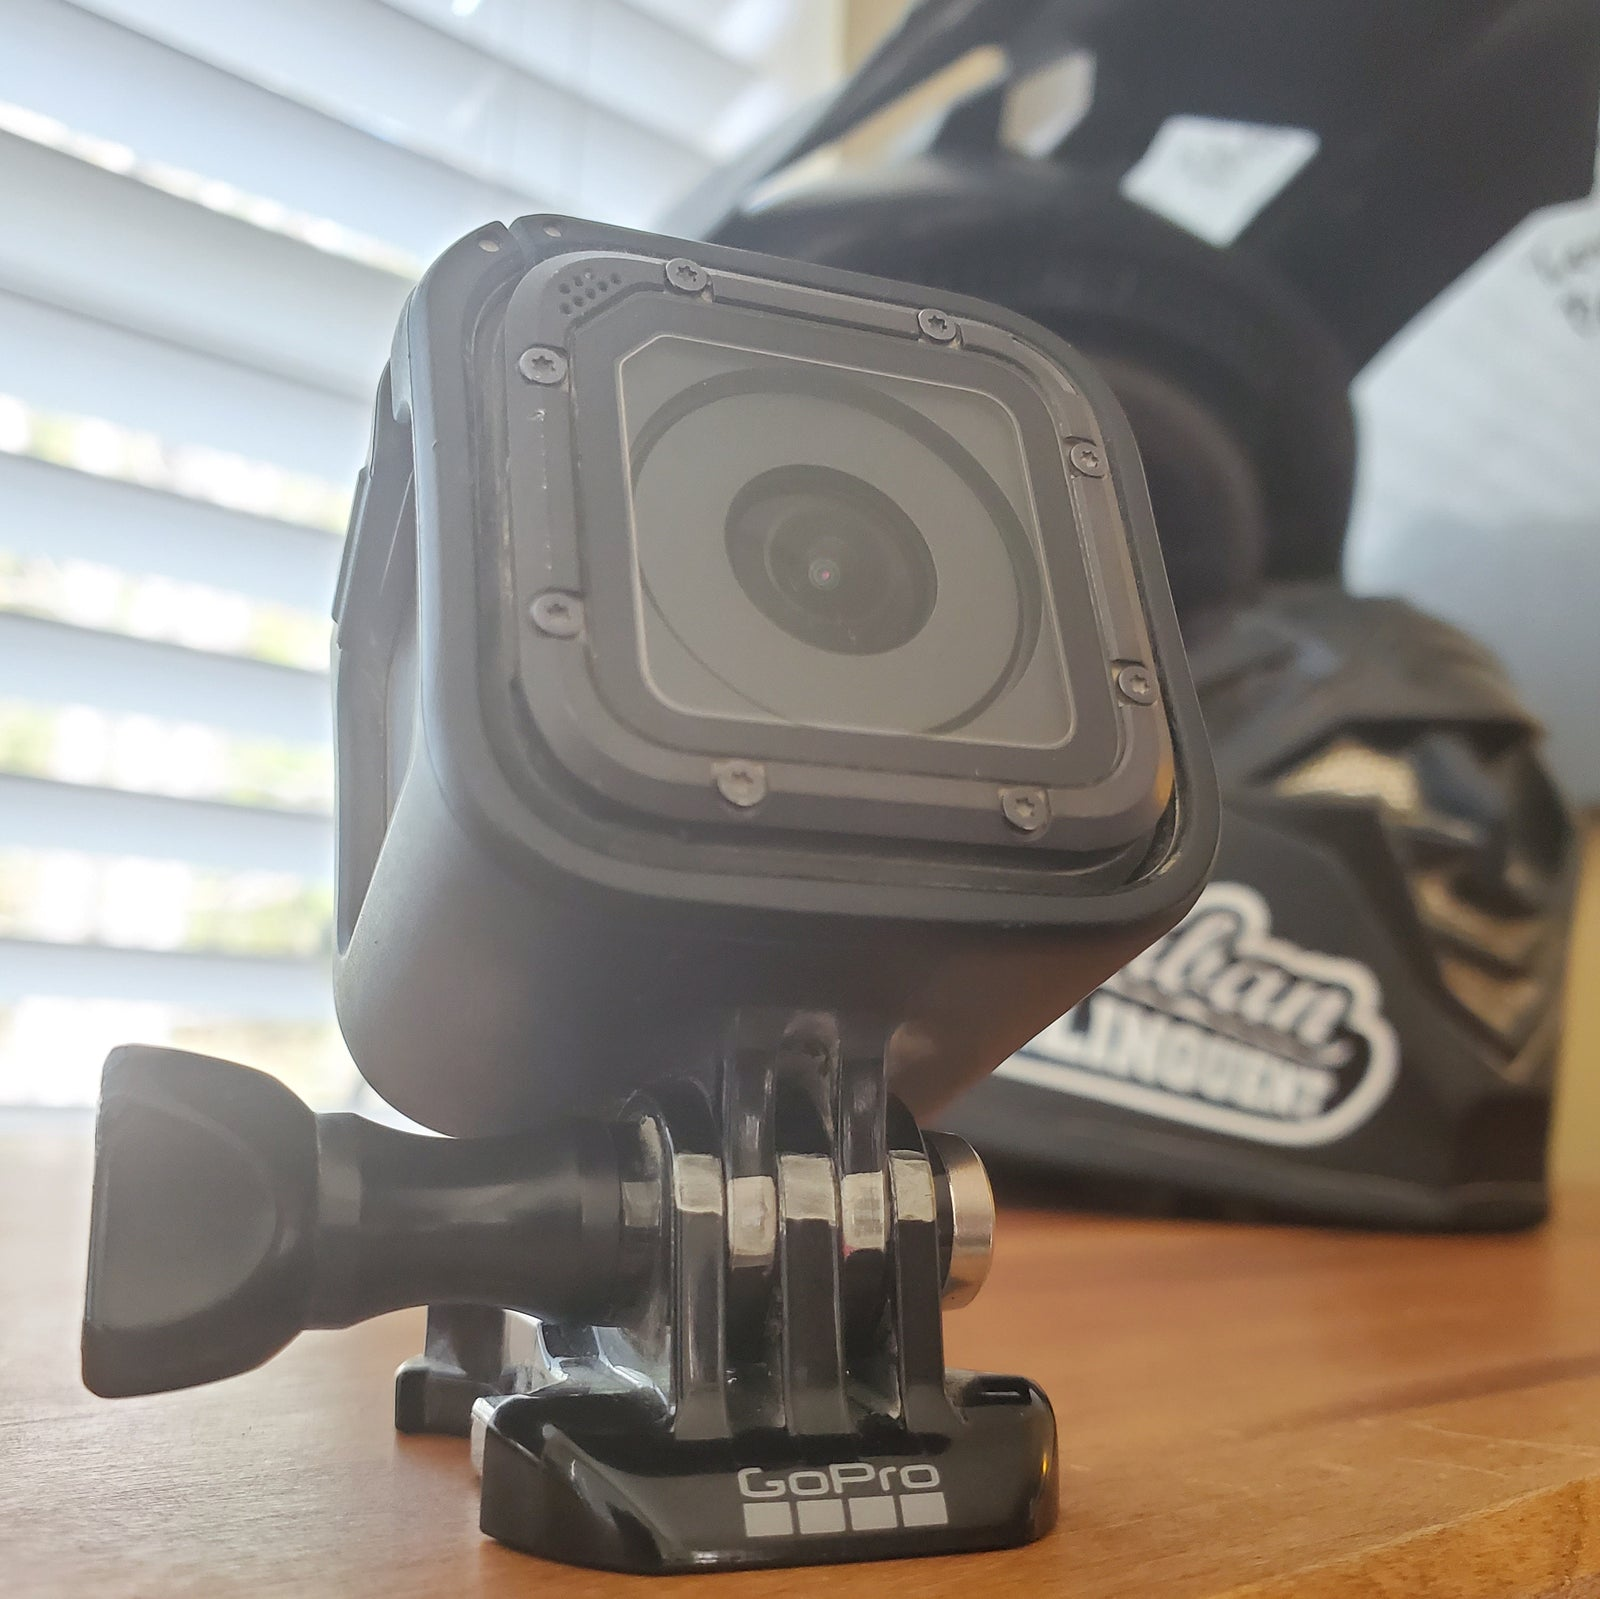 USED - GoPro HERO5 Session